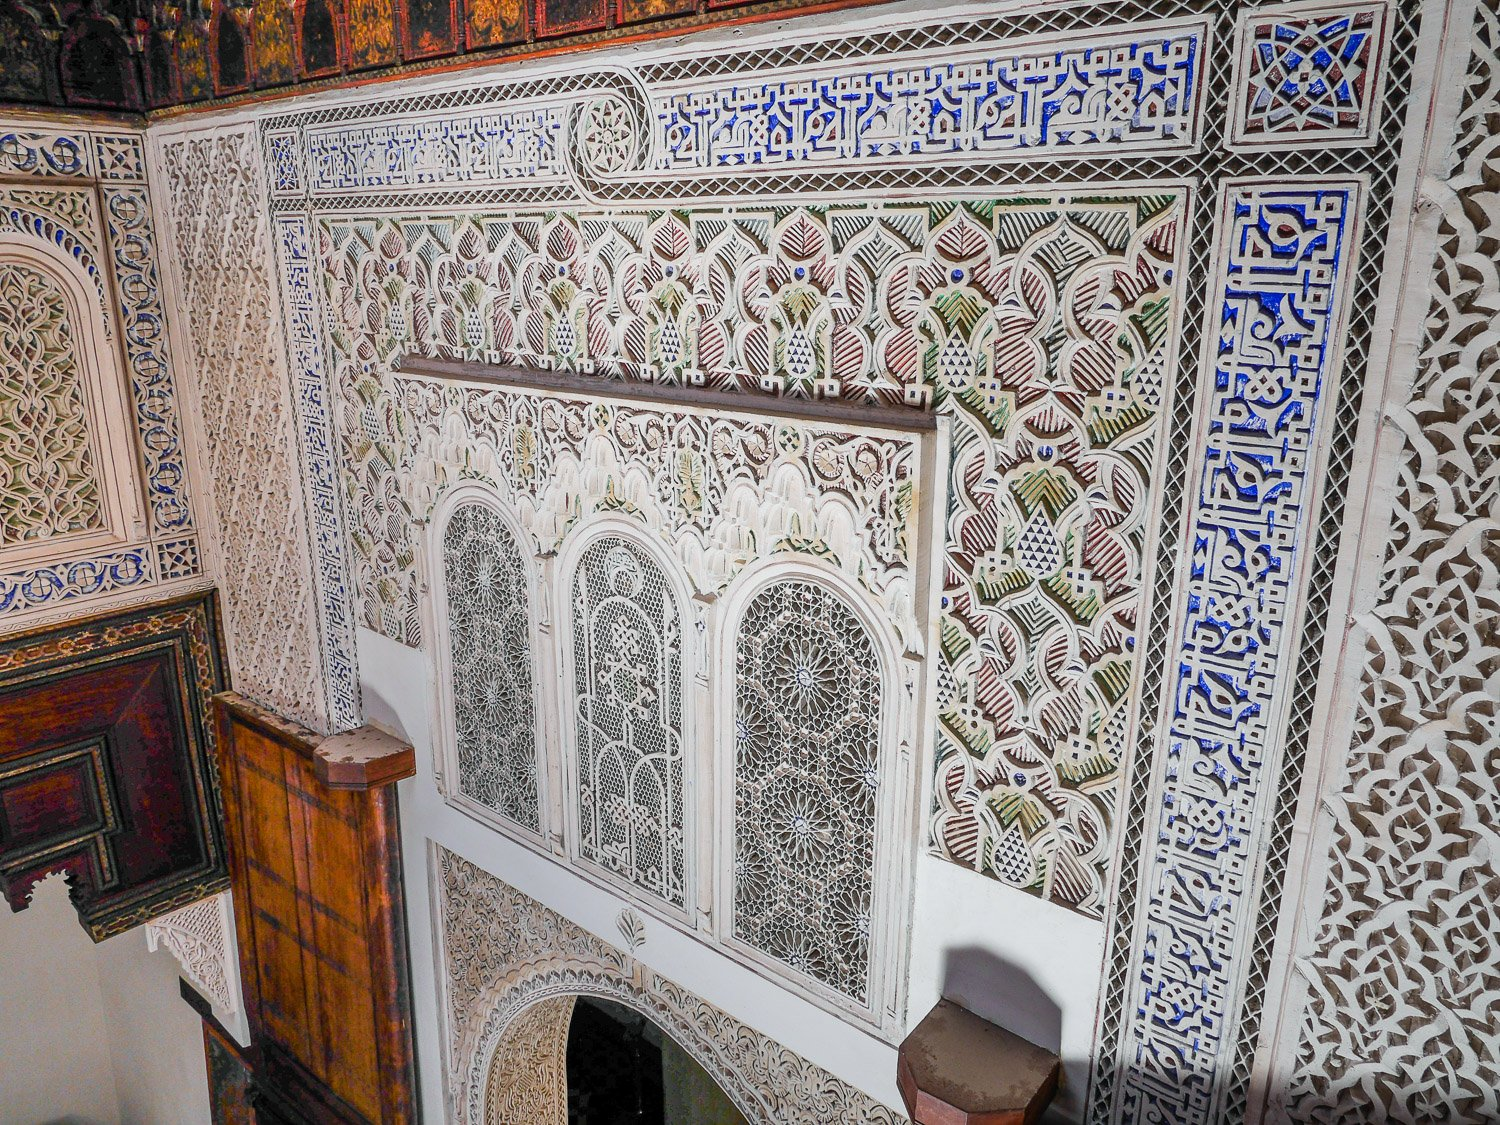 At home in Fez, Morocco